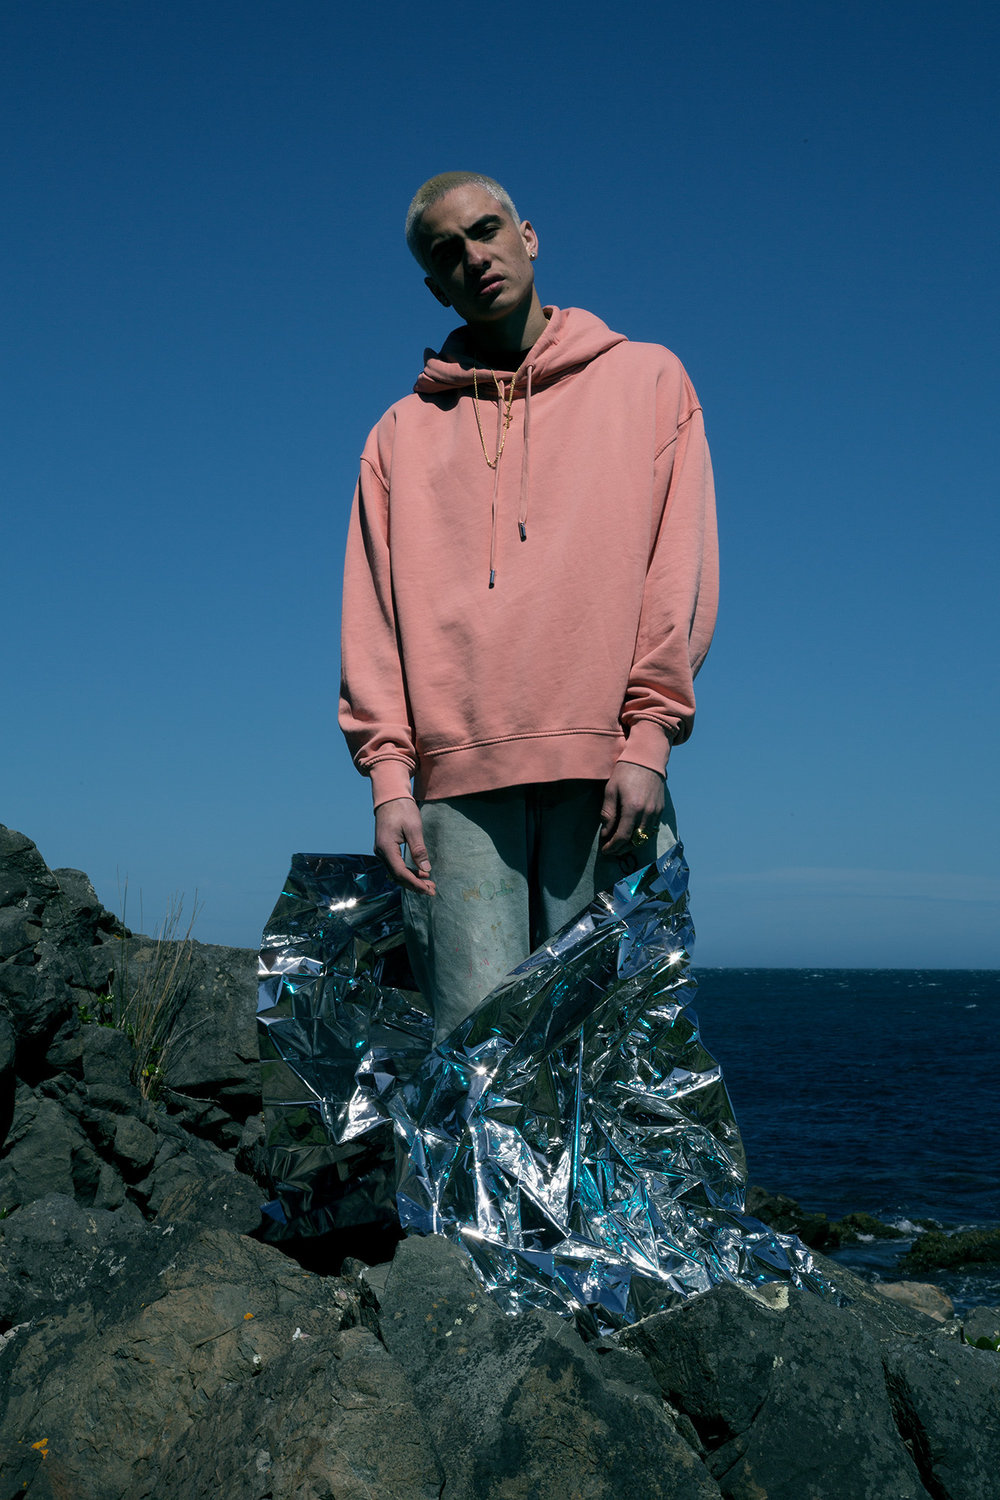 Hunter: Acne Studios hoodie, Warehouse jeans, models own jewellery.